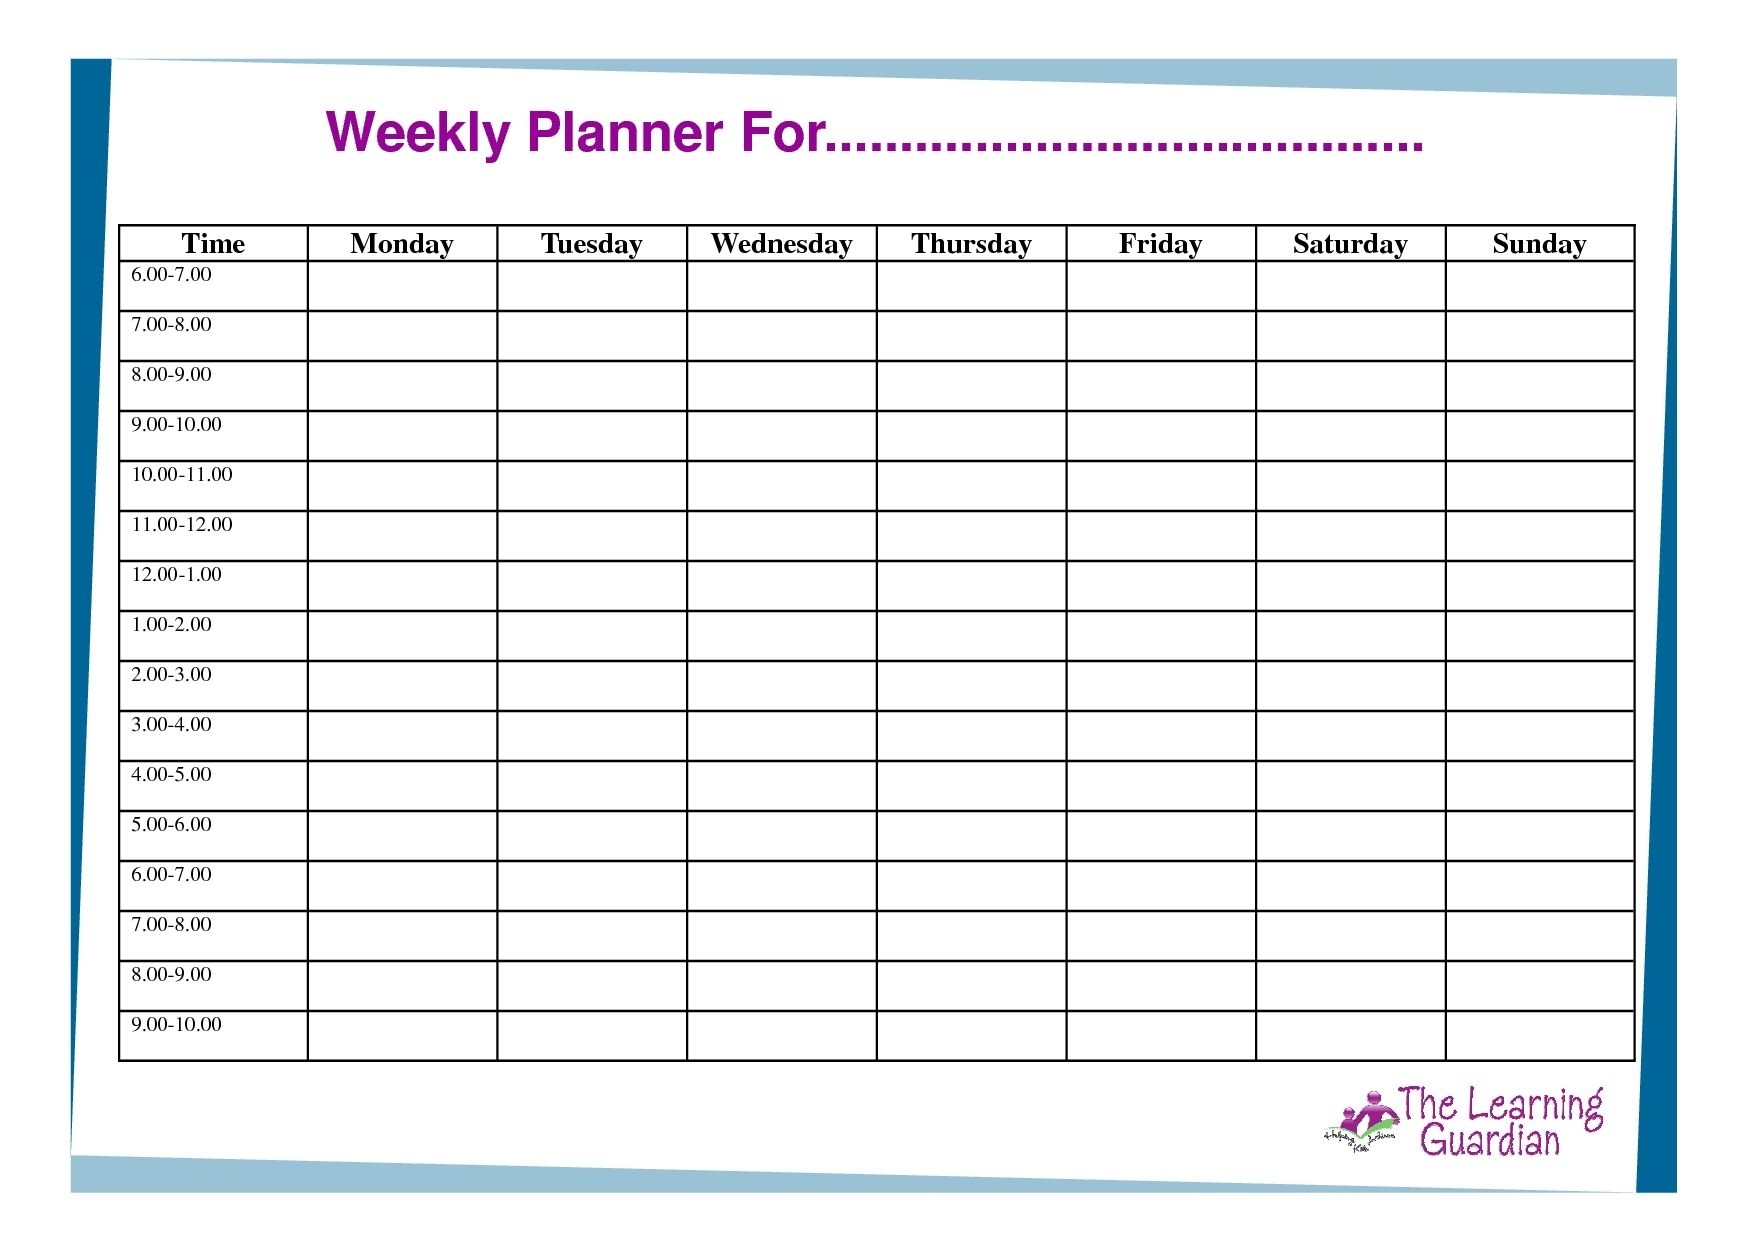 Free Printable Weekly Calendar Templates Planner For Time Incredible pertaining to 7 Day 12 Week Planner Blank